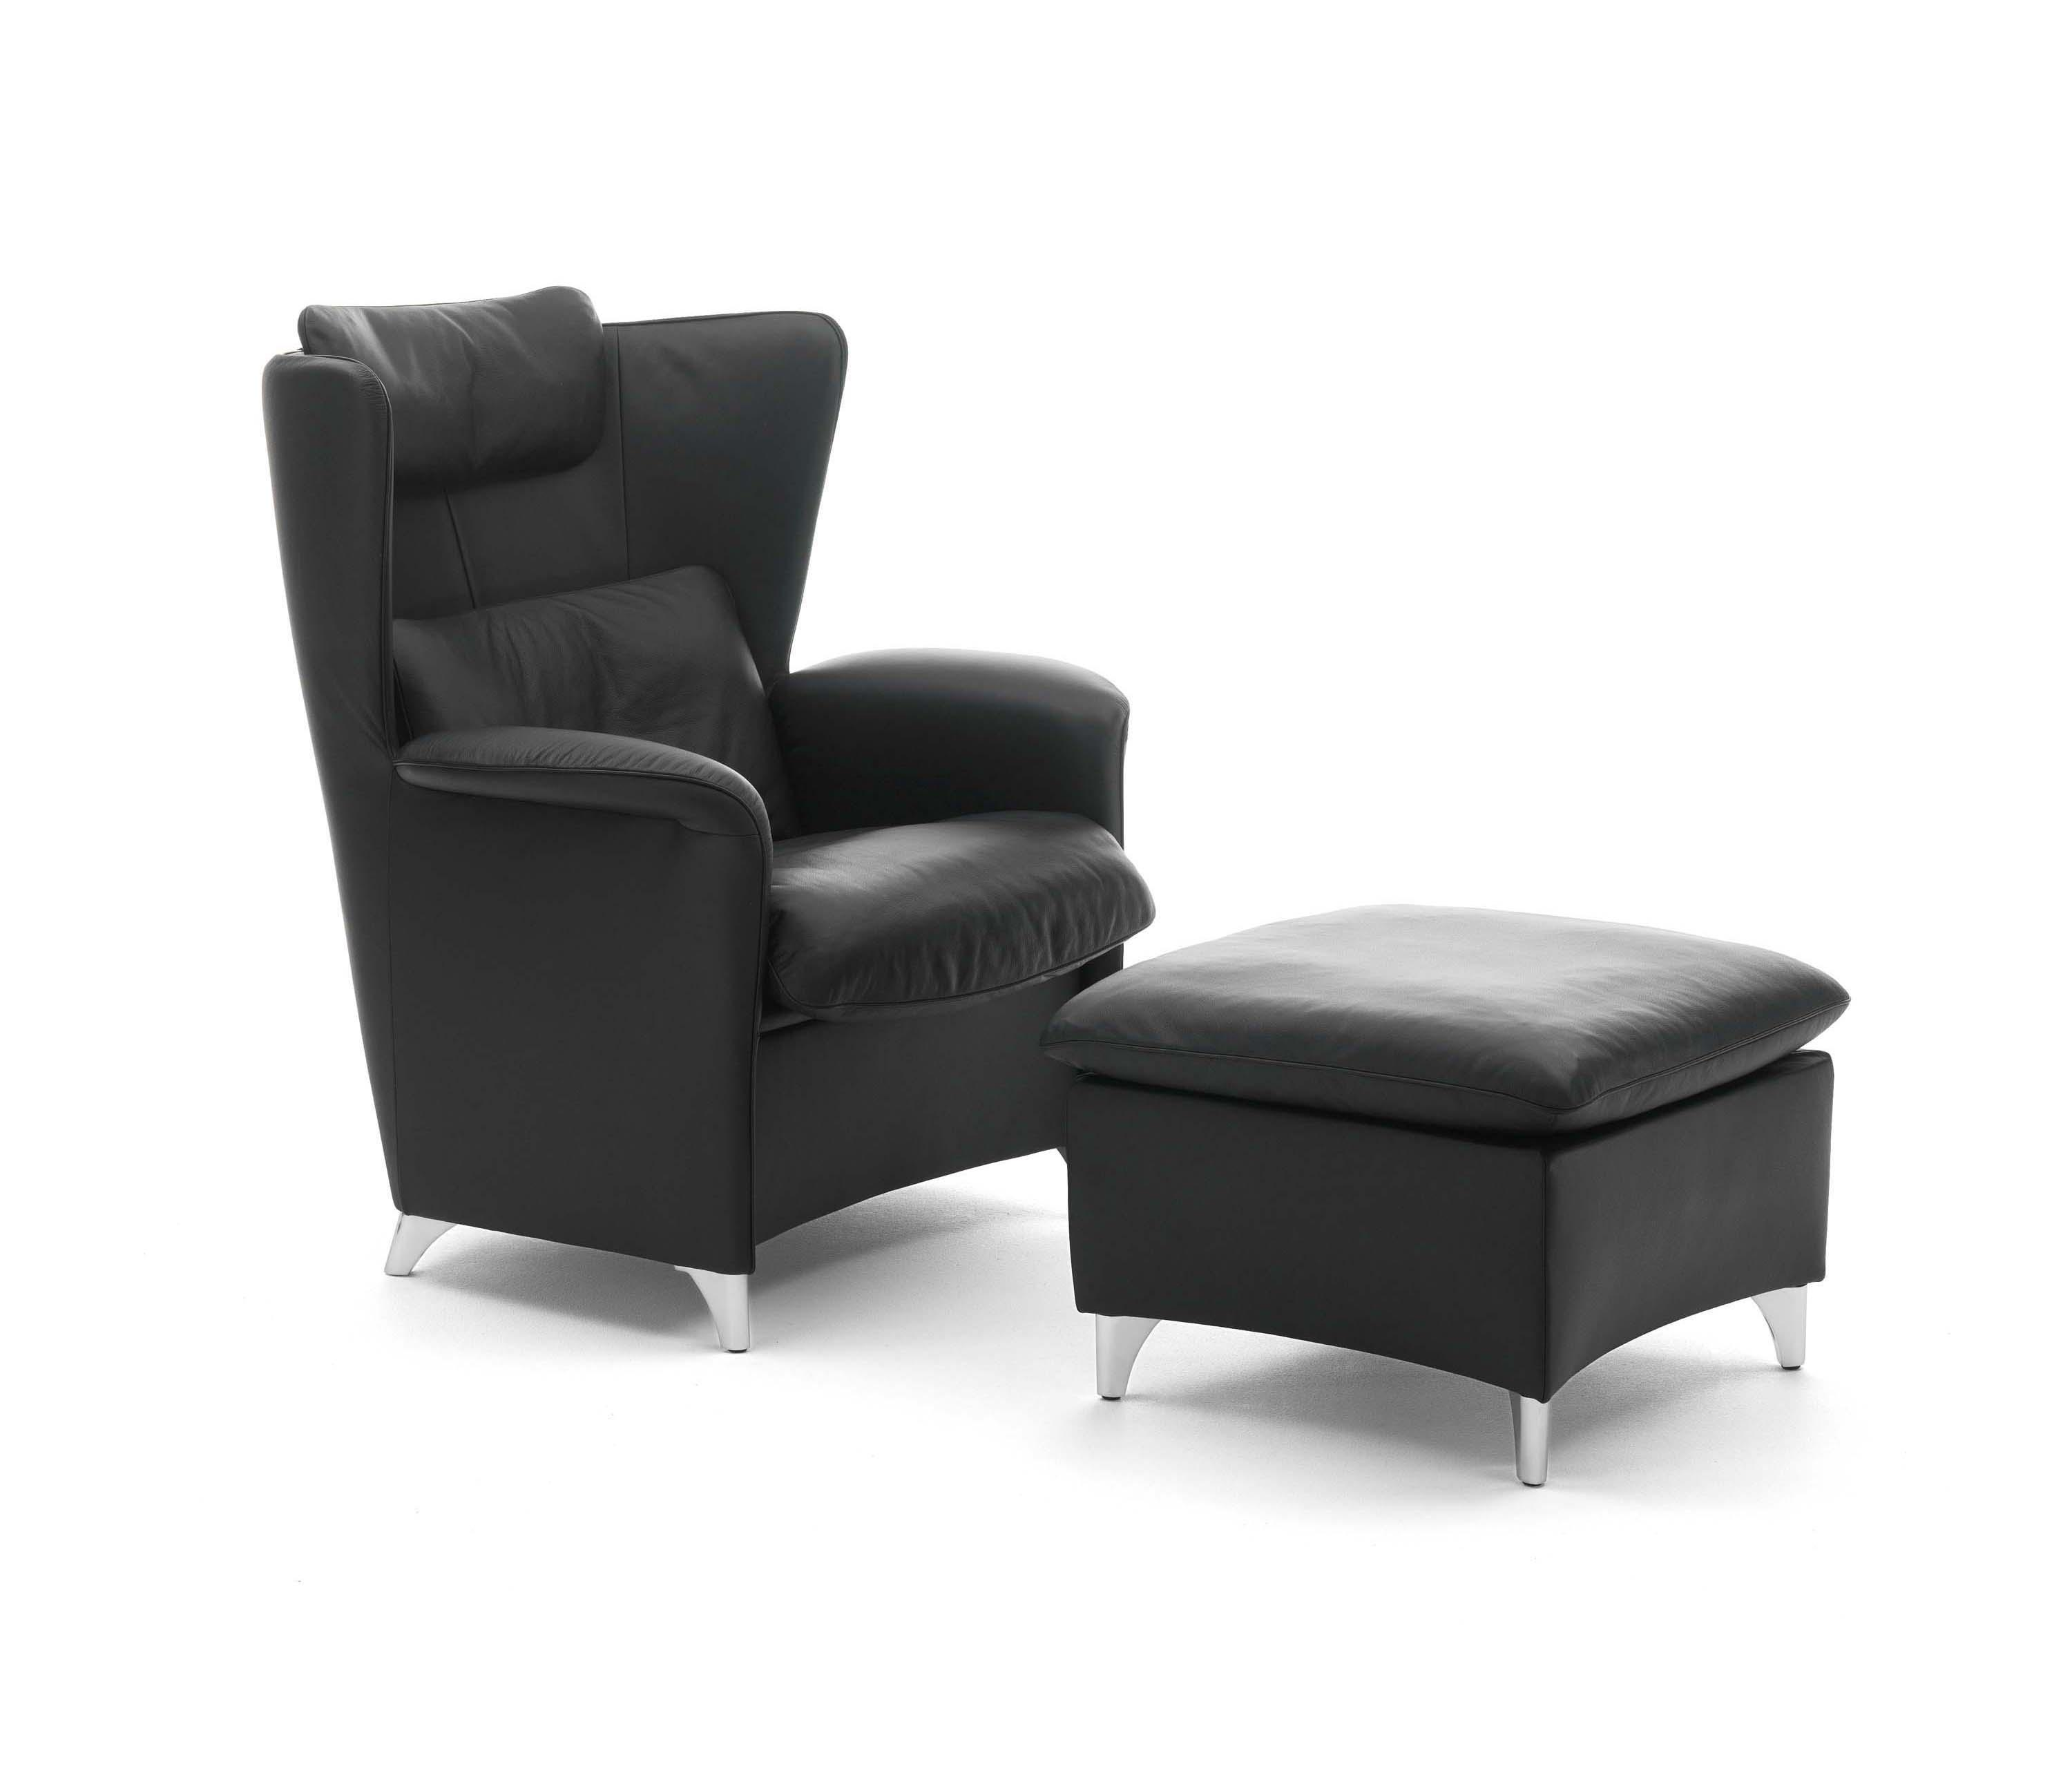 De Sede Sessel Gebraucht Ds 23 Armchairs From De Sede Architonic